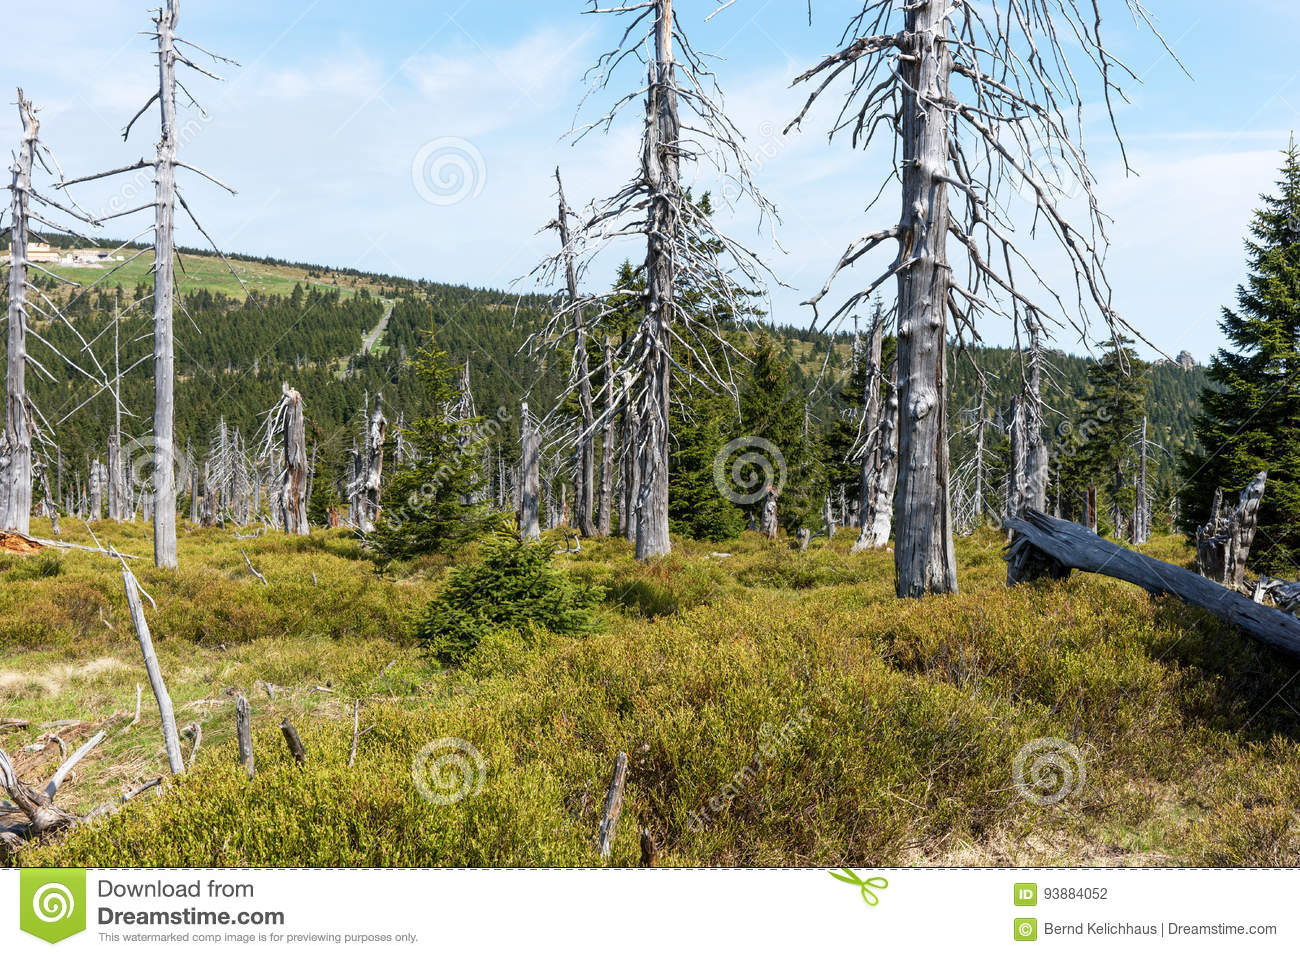 Dead trees - Effect of environmental pollution